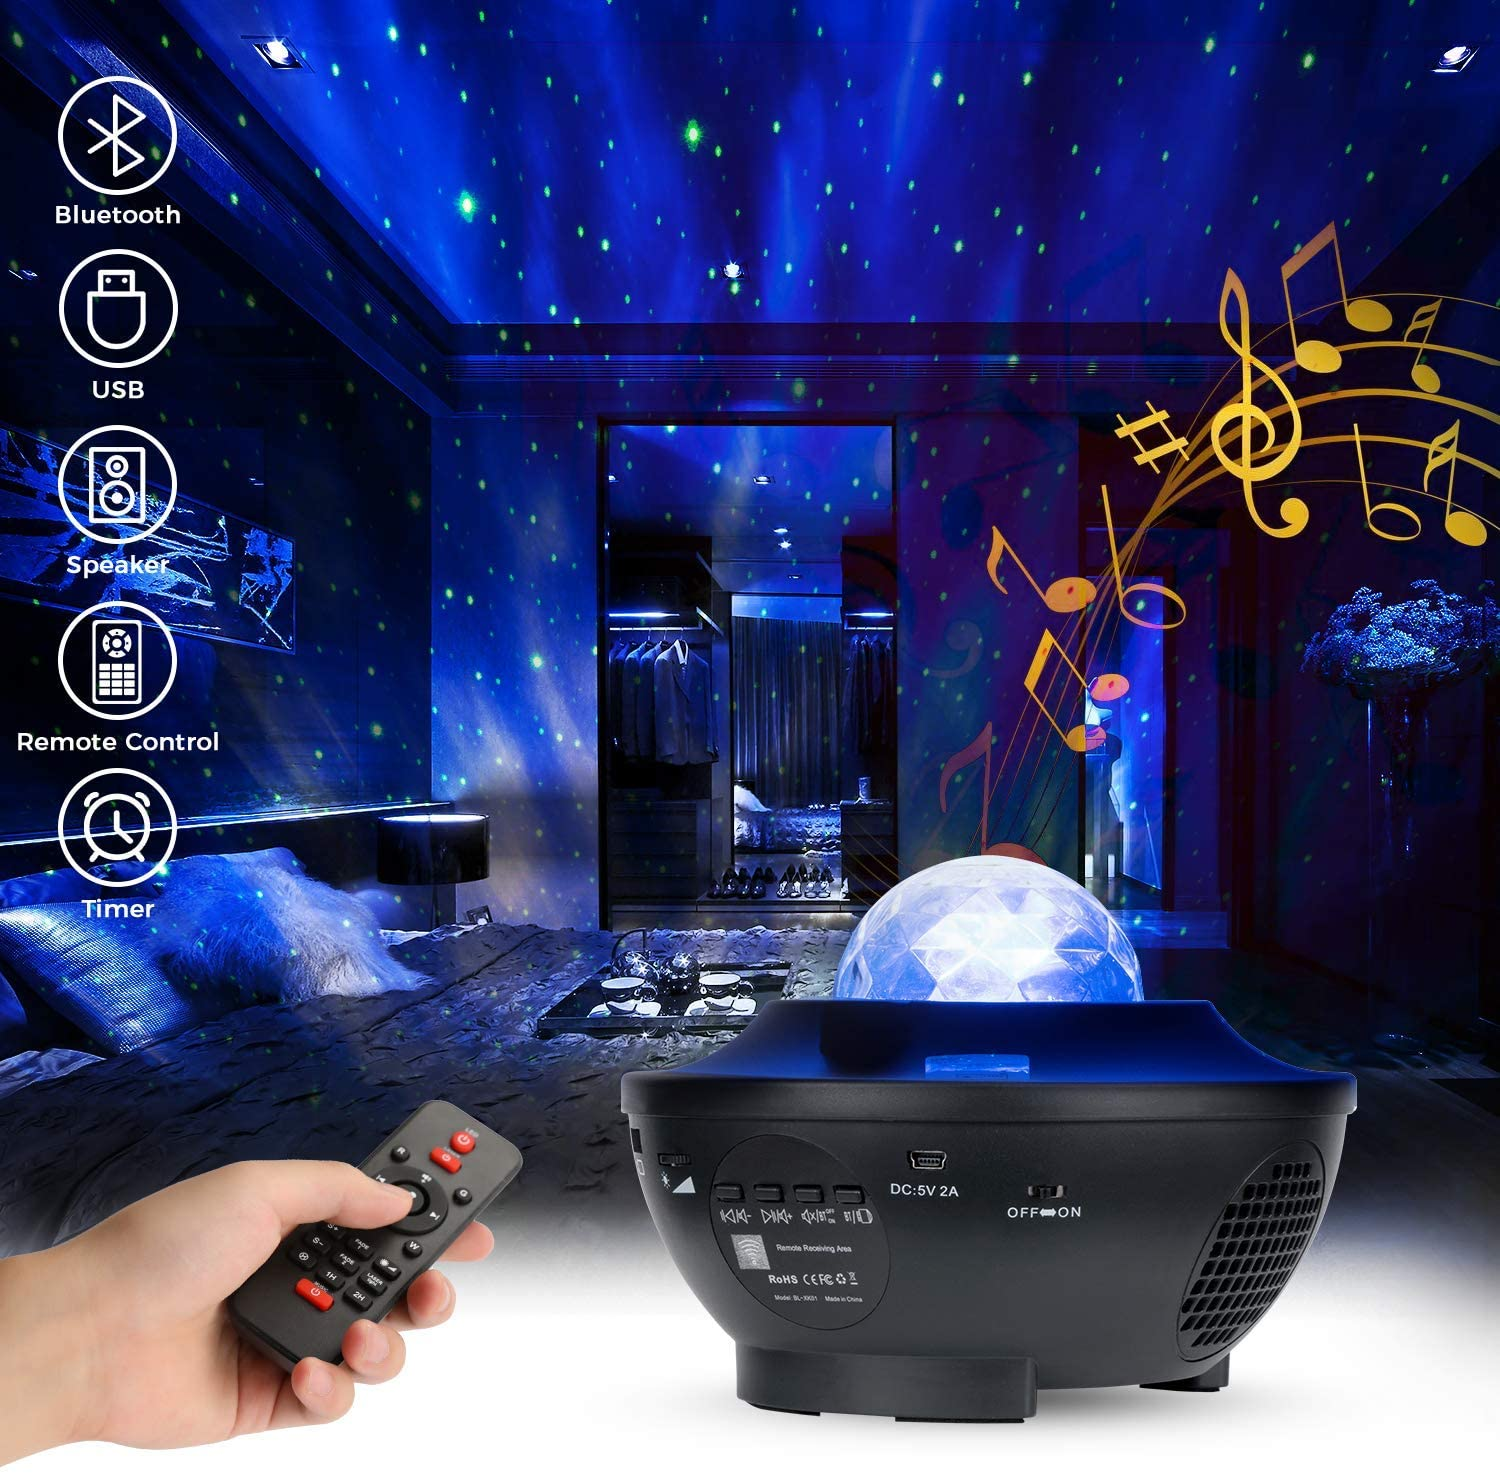 Nebula Galaxy Projector Starry Night Light Projector Ocean Wave Projector Laser Star Light Projector for Bedroom, Game Room